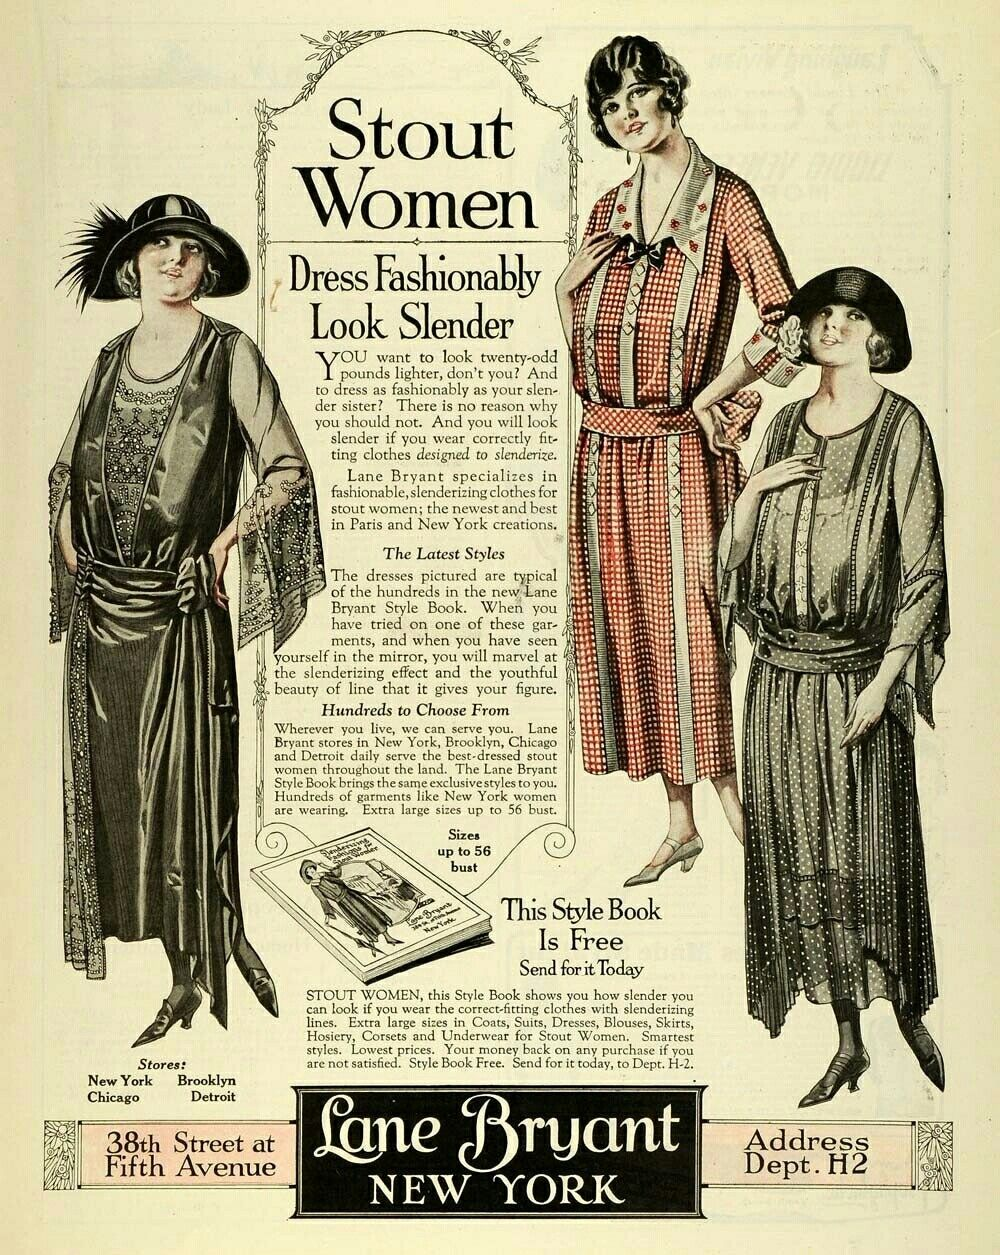 d9fed59e104 Layne Bryant 1923 (The '20s we're not good fashion years for women with  curves.)